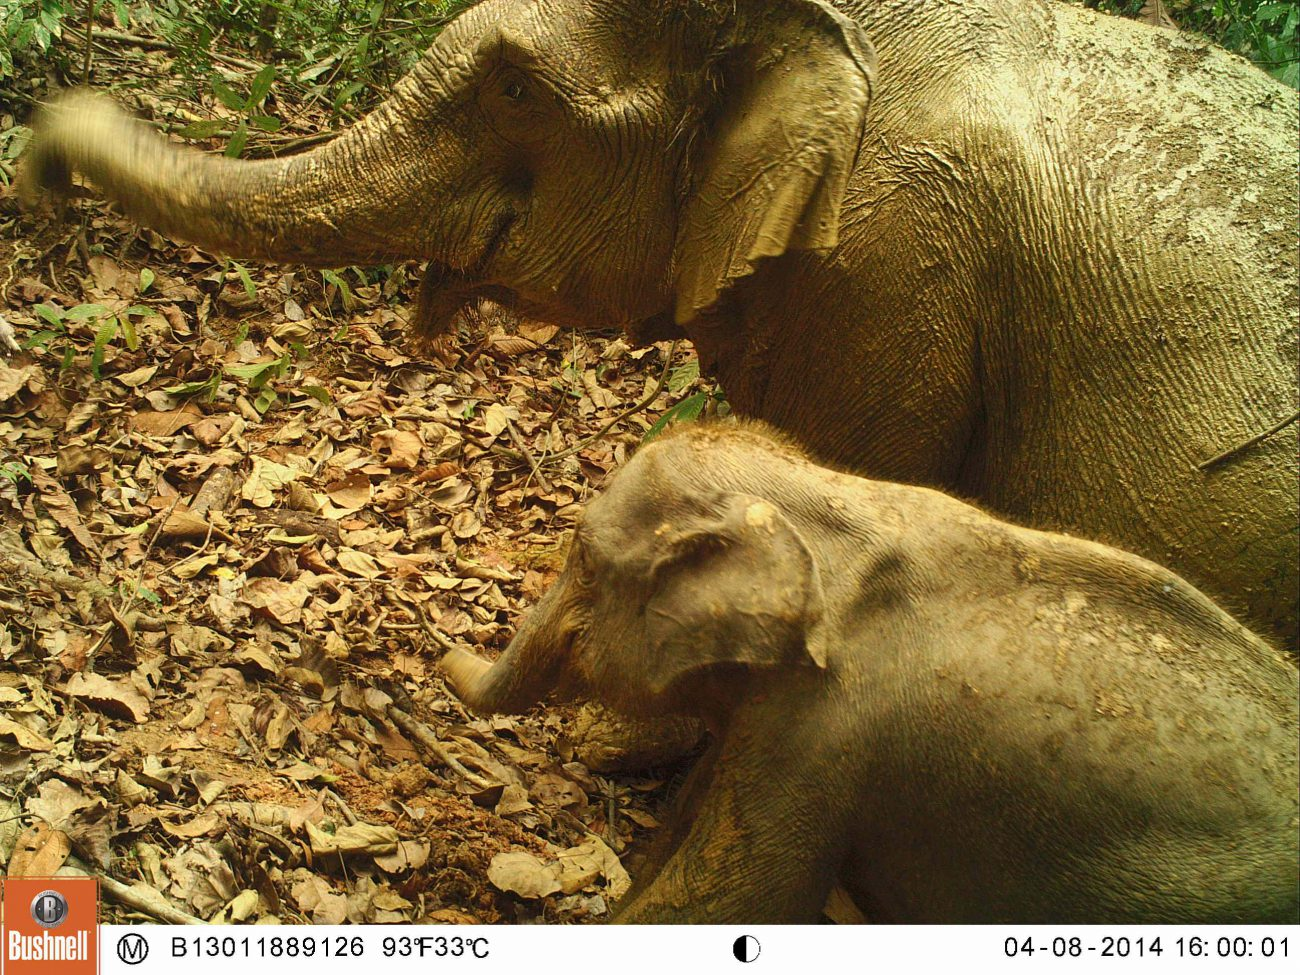 Elephants on camera trap